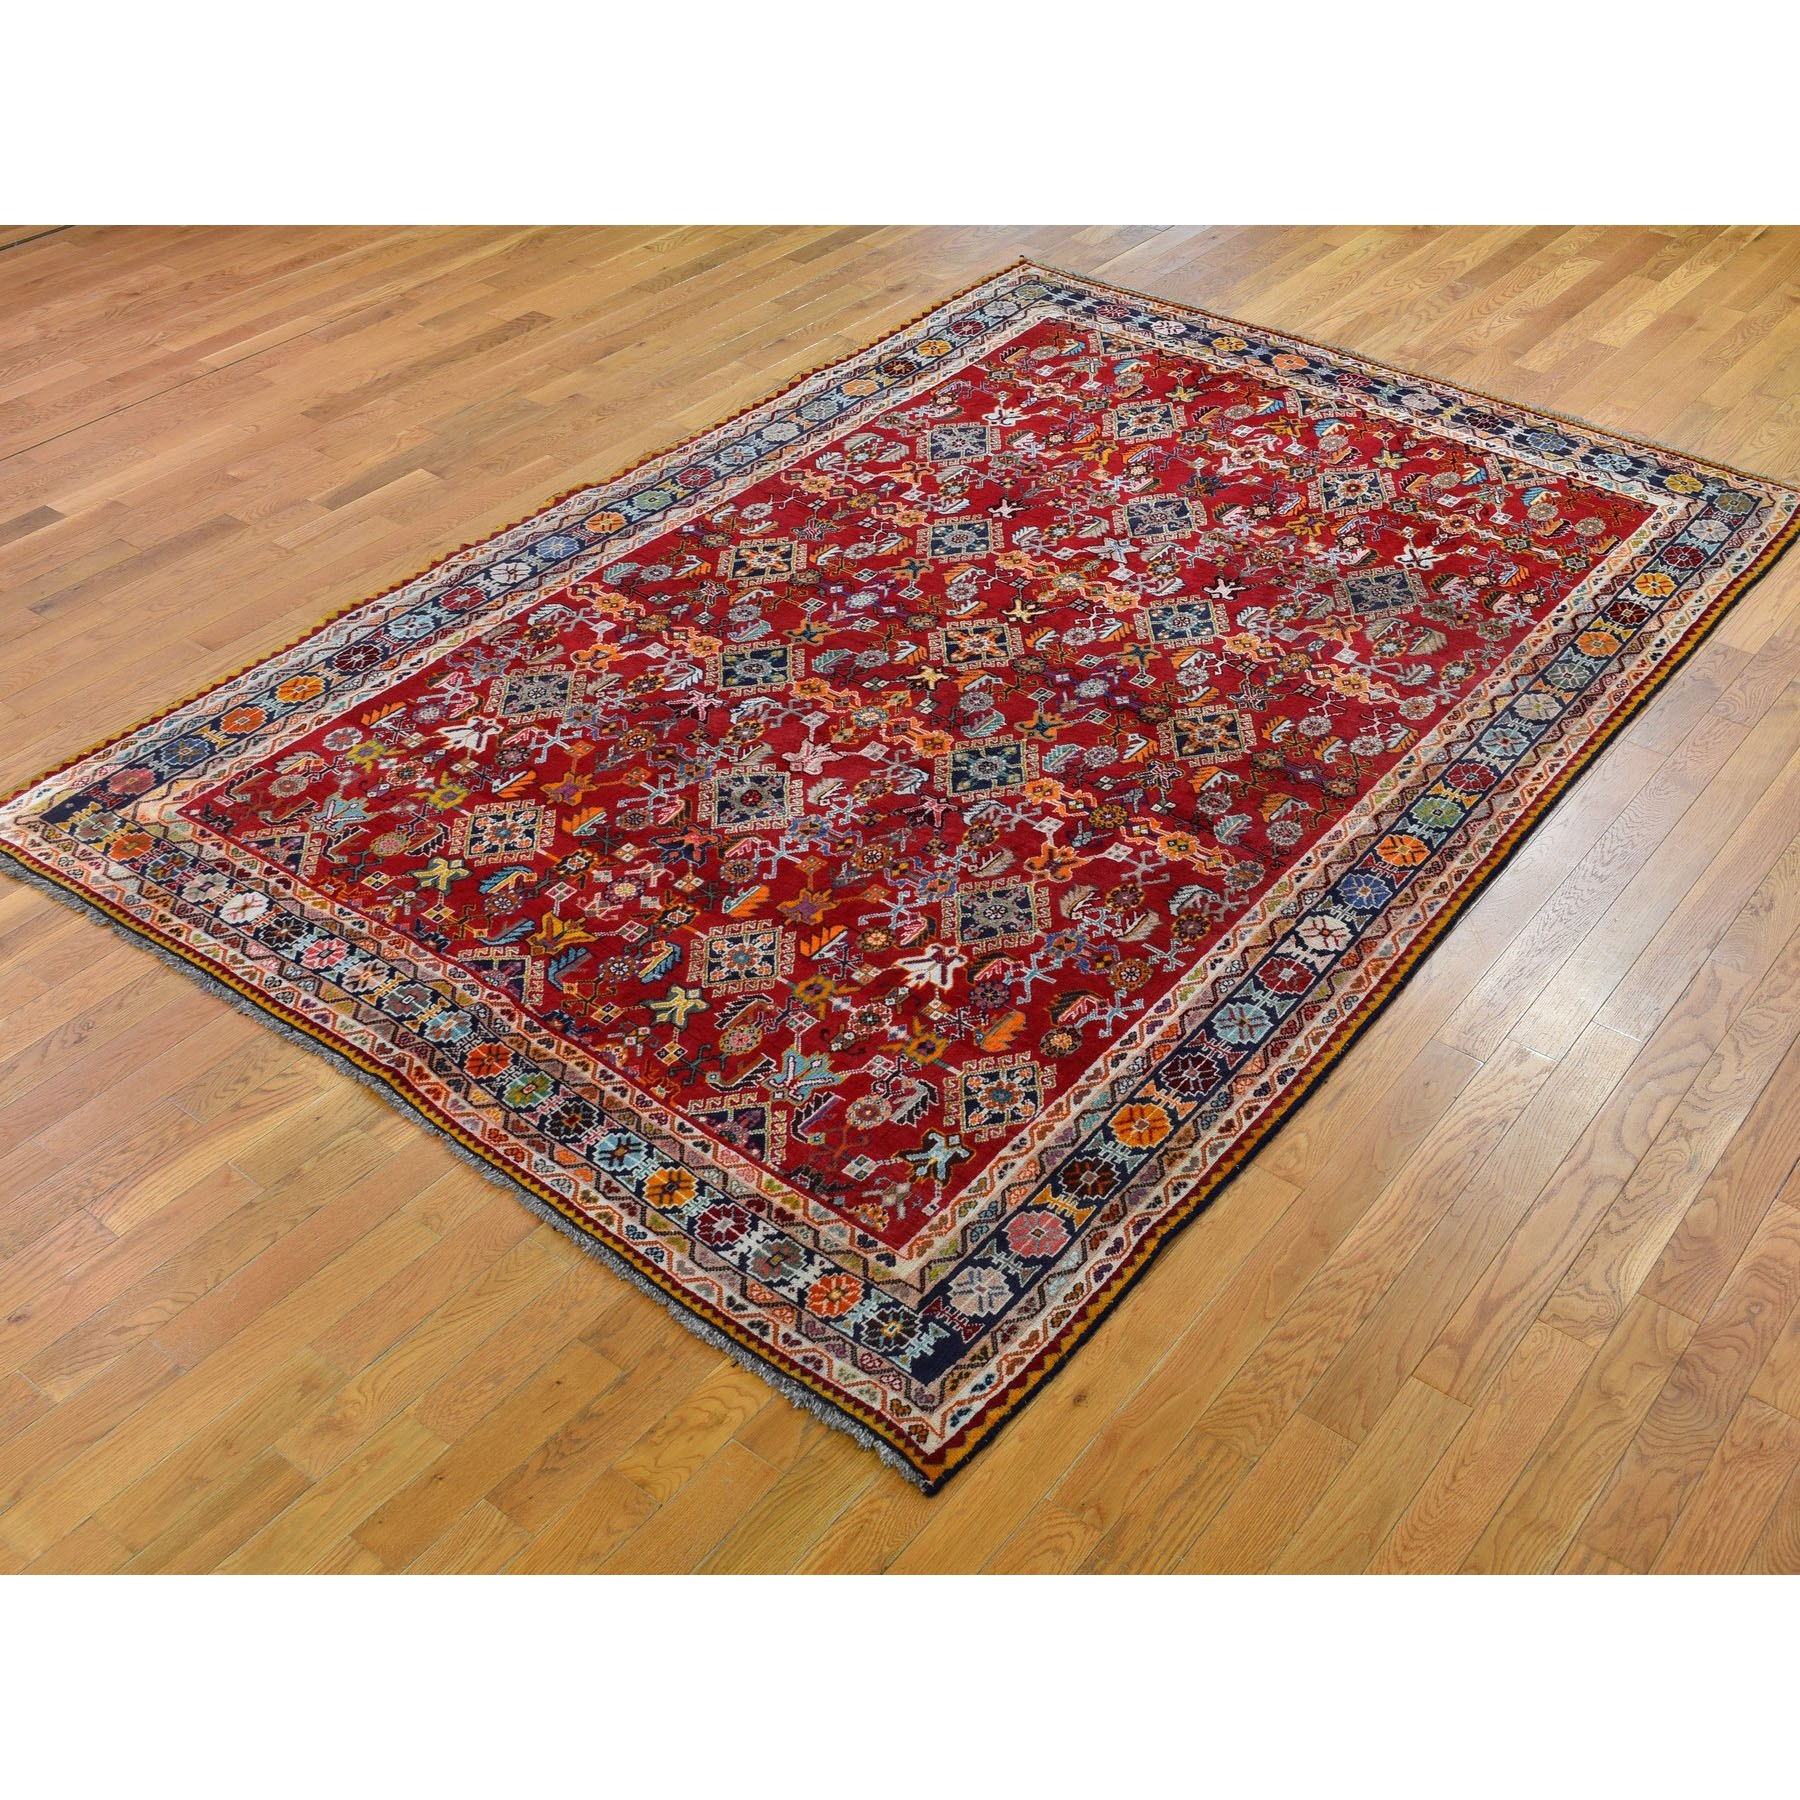 """6'9""""x10' Red Vintage Persian Shiraz Exc Cond Full Pile Pure Wool Hand Knotted Oriental Rug"""